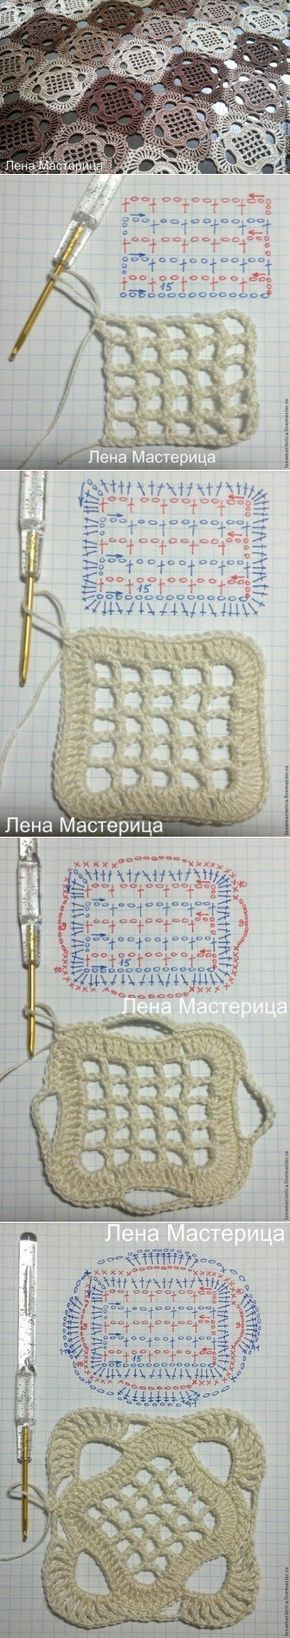 320 best ganchillo images on Pinterest | Crochet motif, Crochet ...